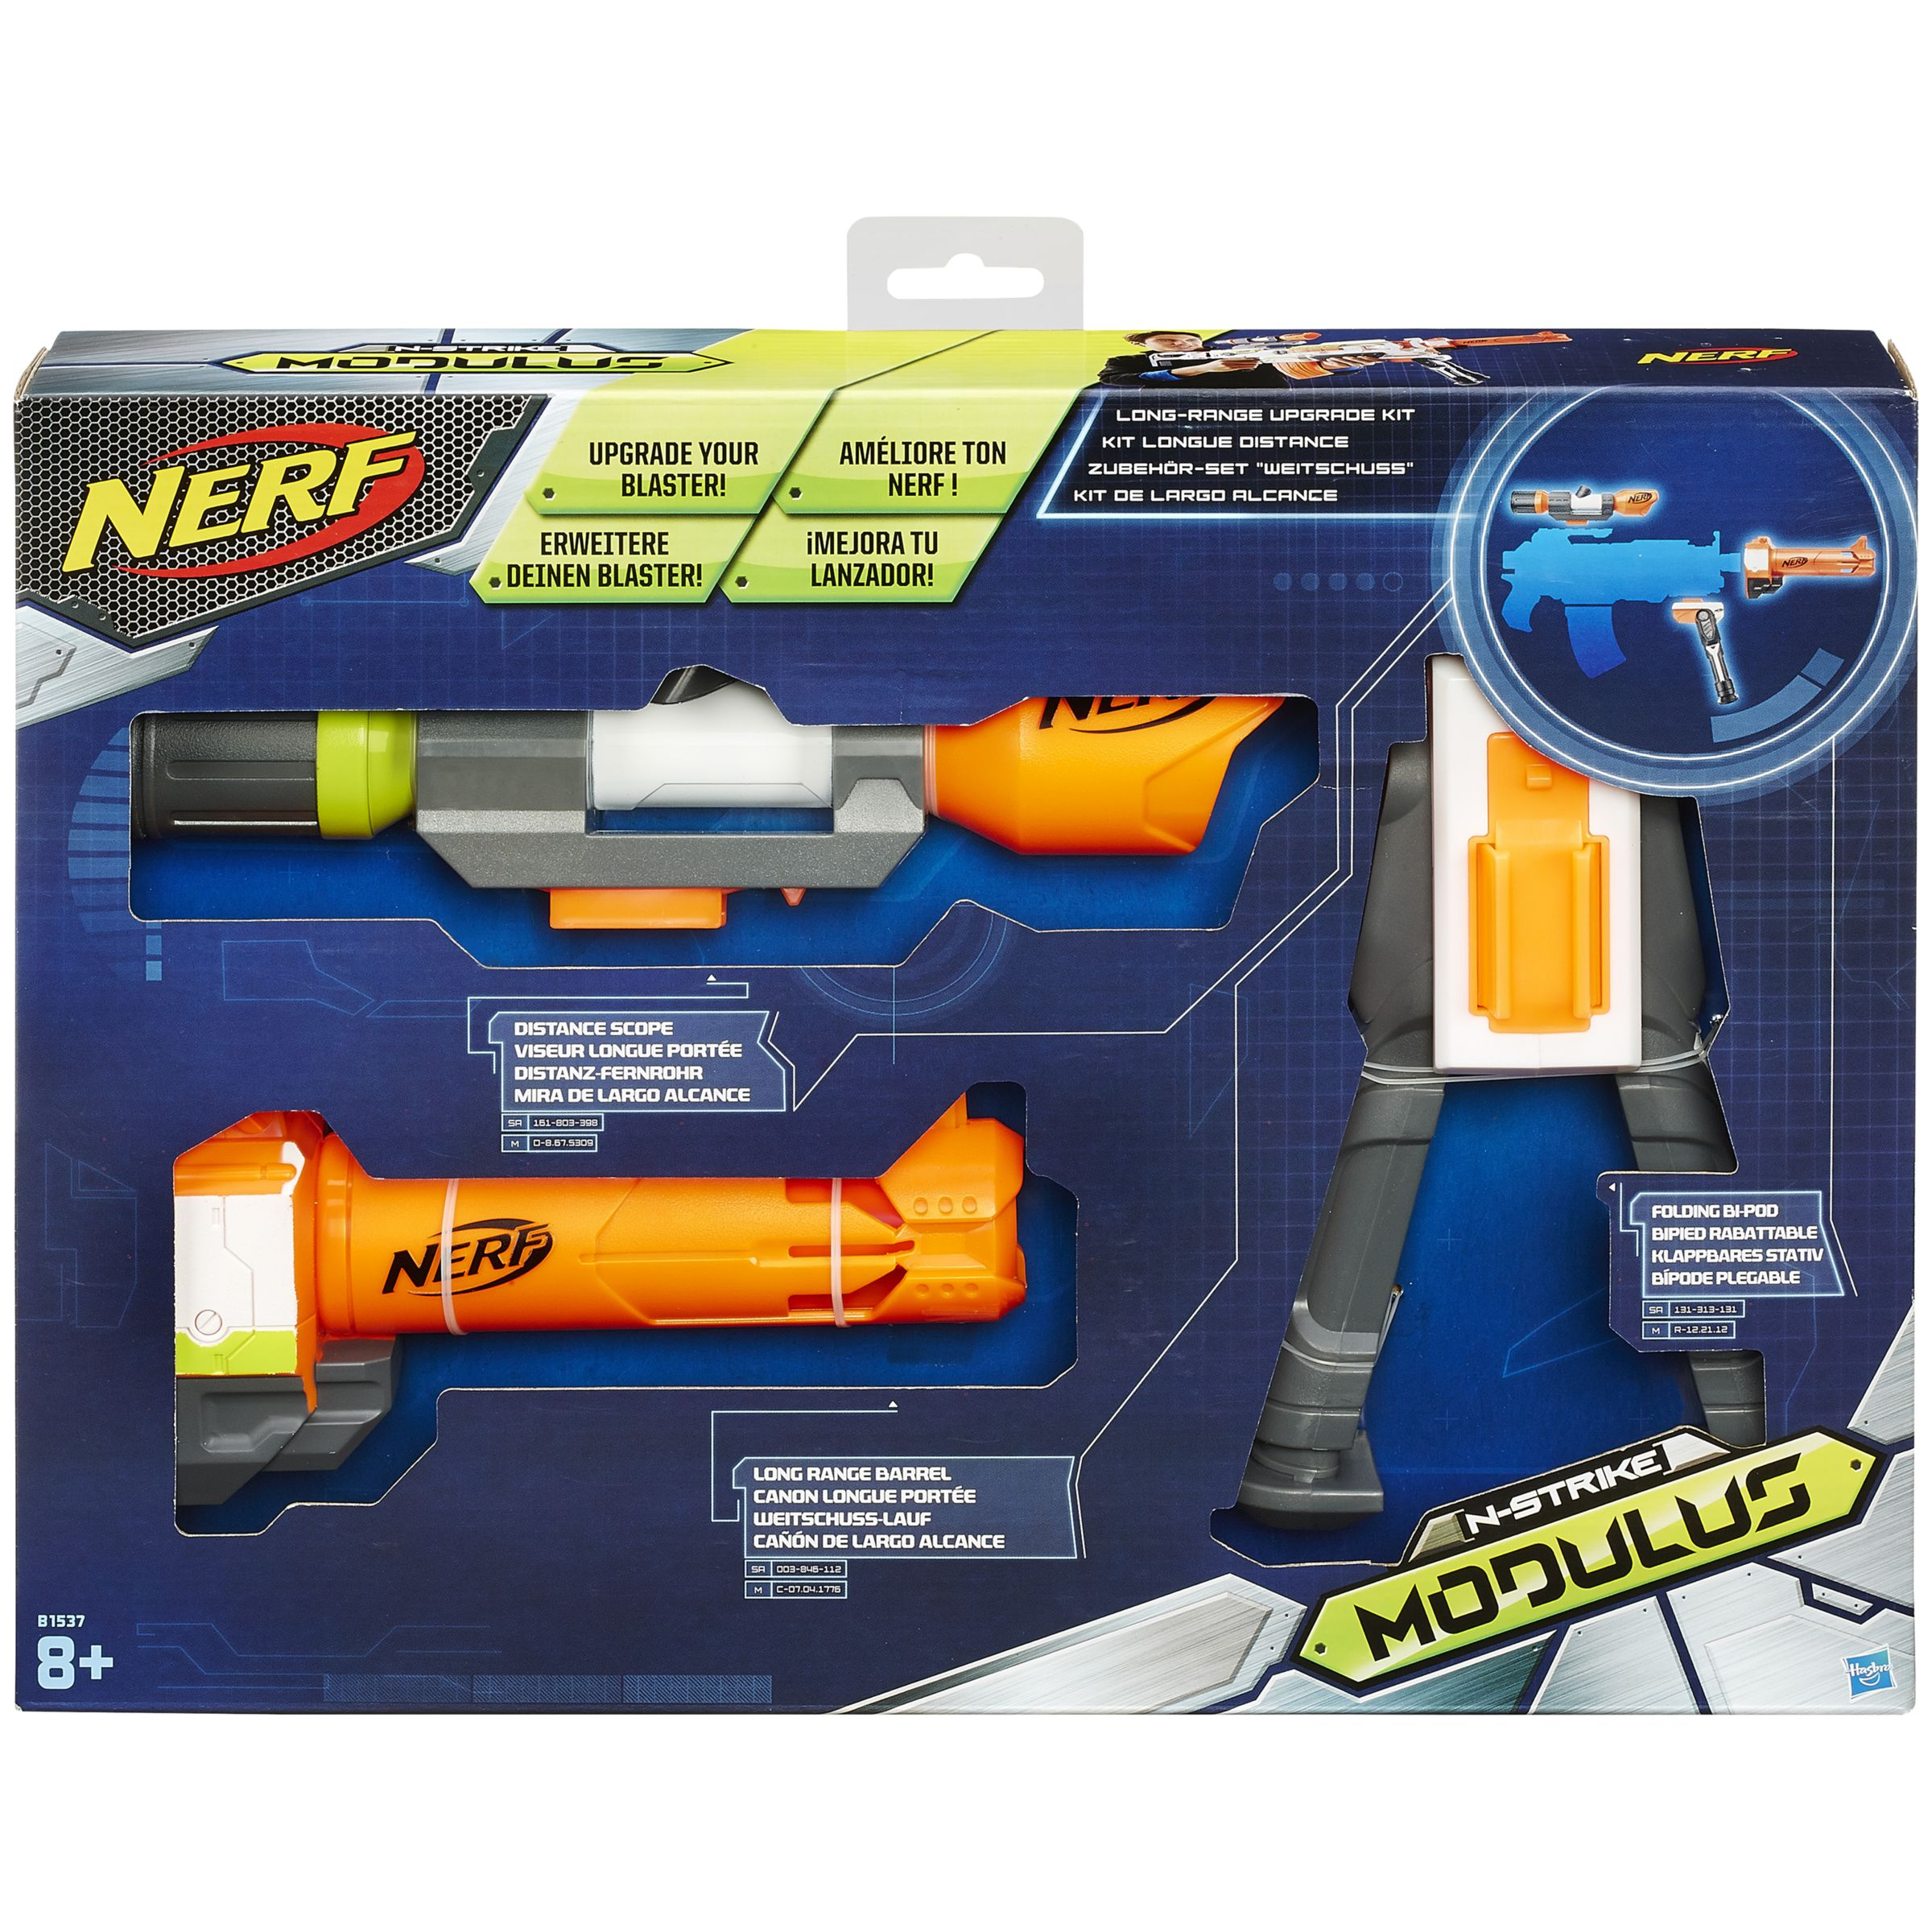 NERF Nerf Modulus Long Range Upgrade Kit